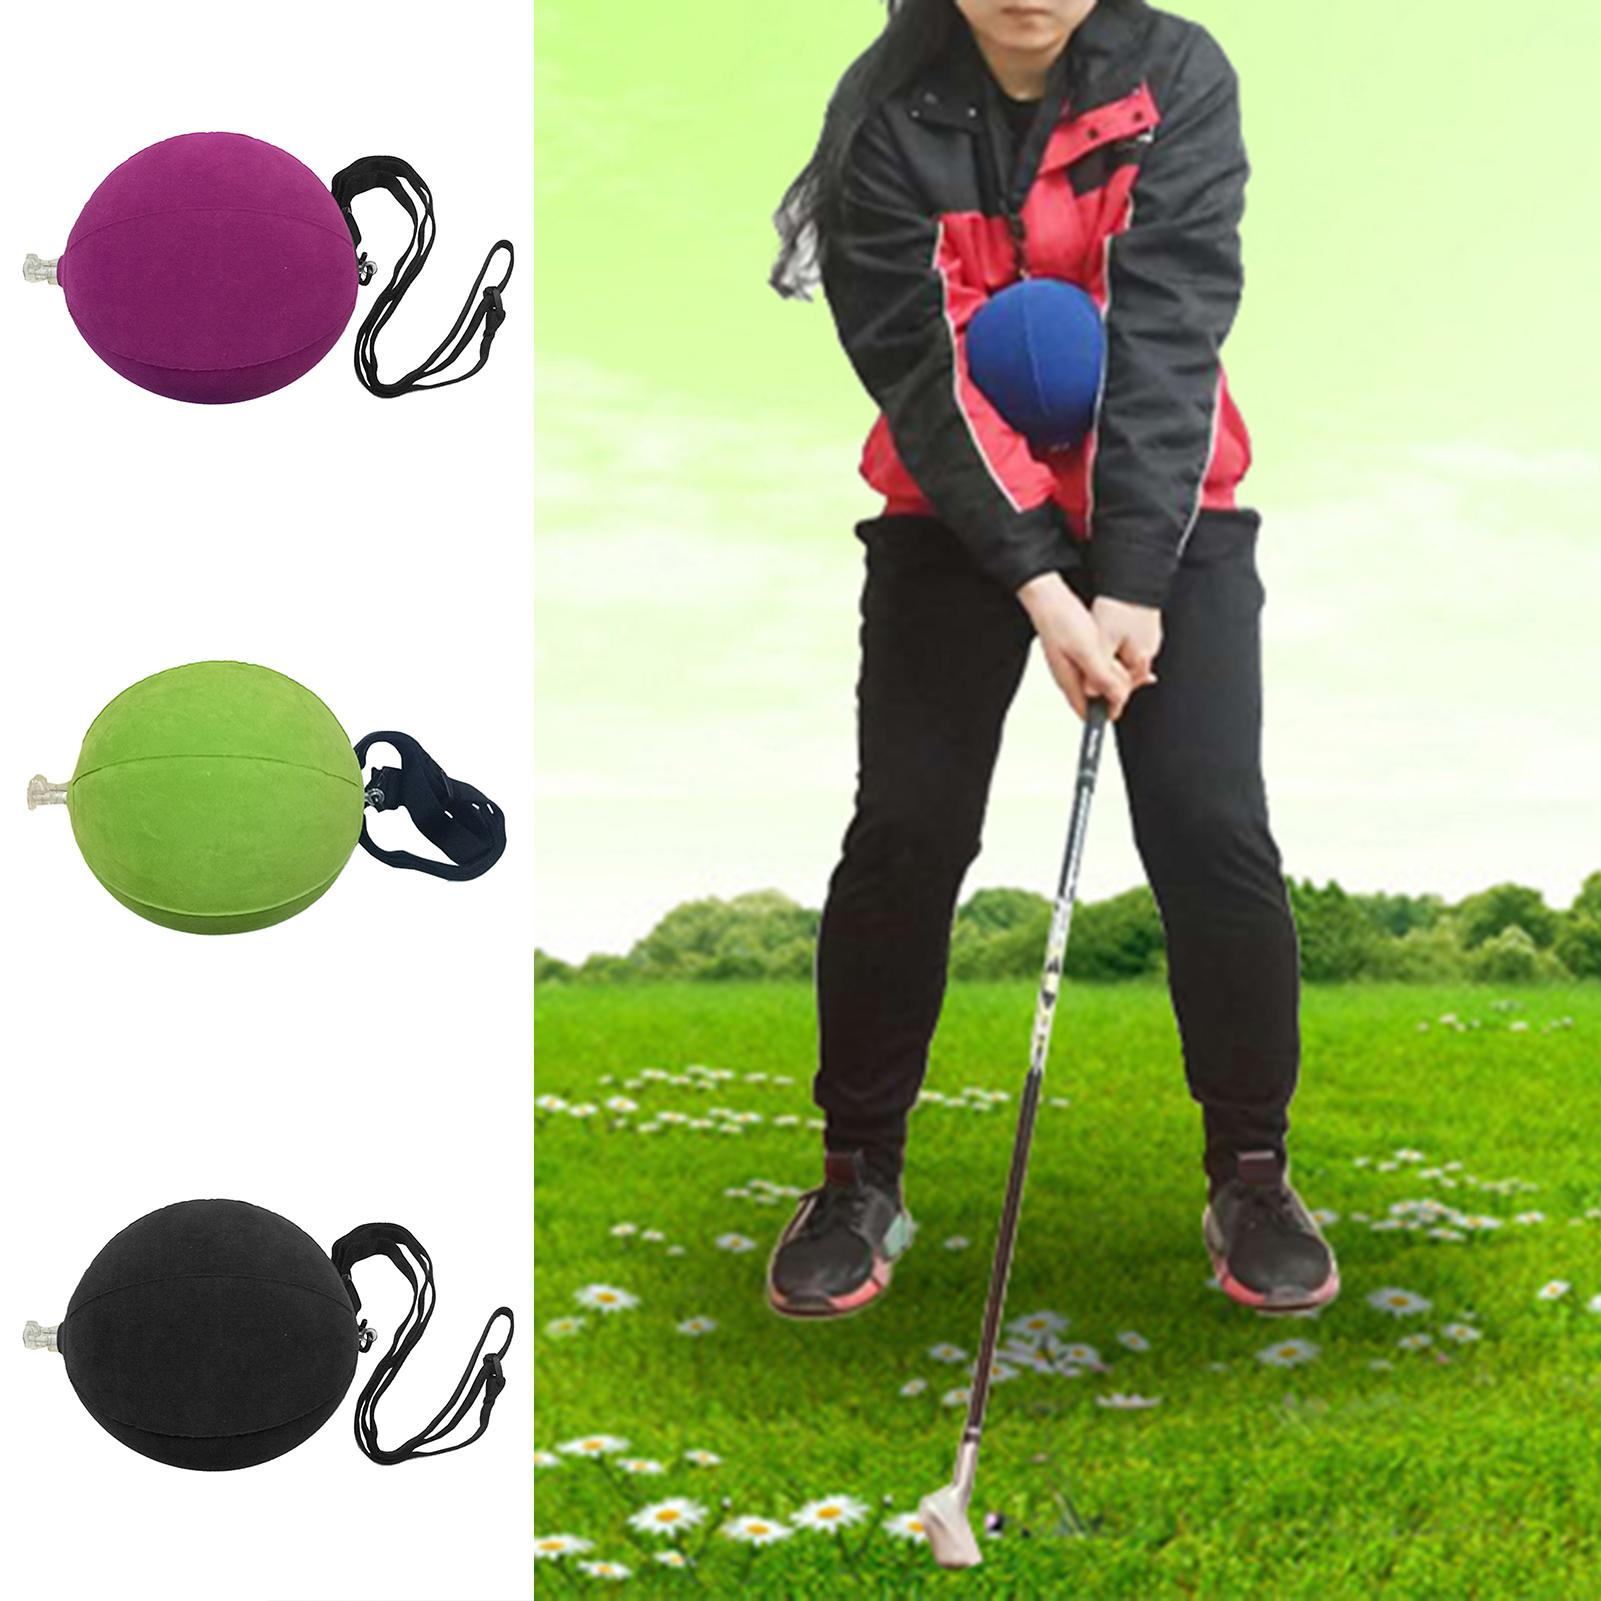 Golf Smart Inflatable Swing Trainer Ball Posture Correction Training Supplies